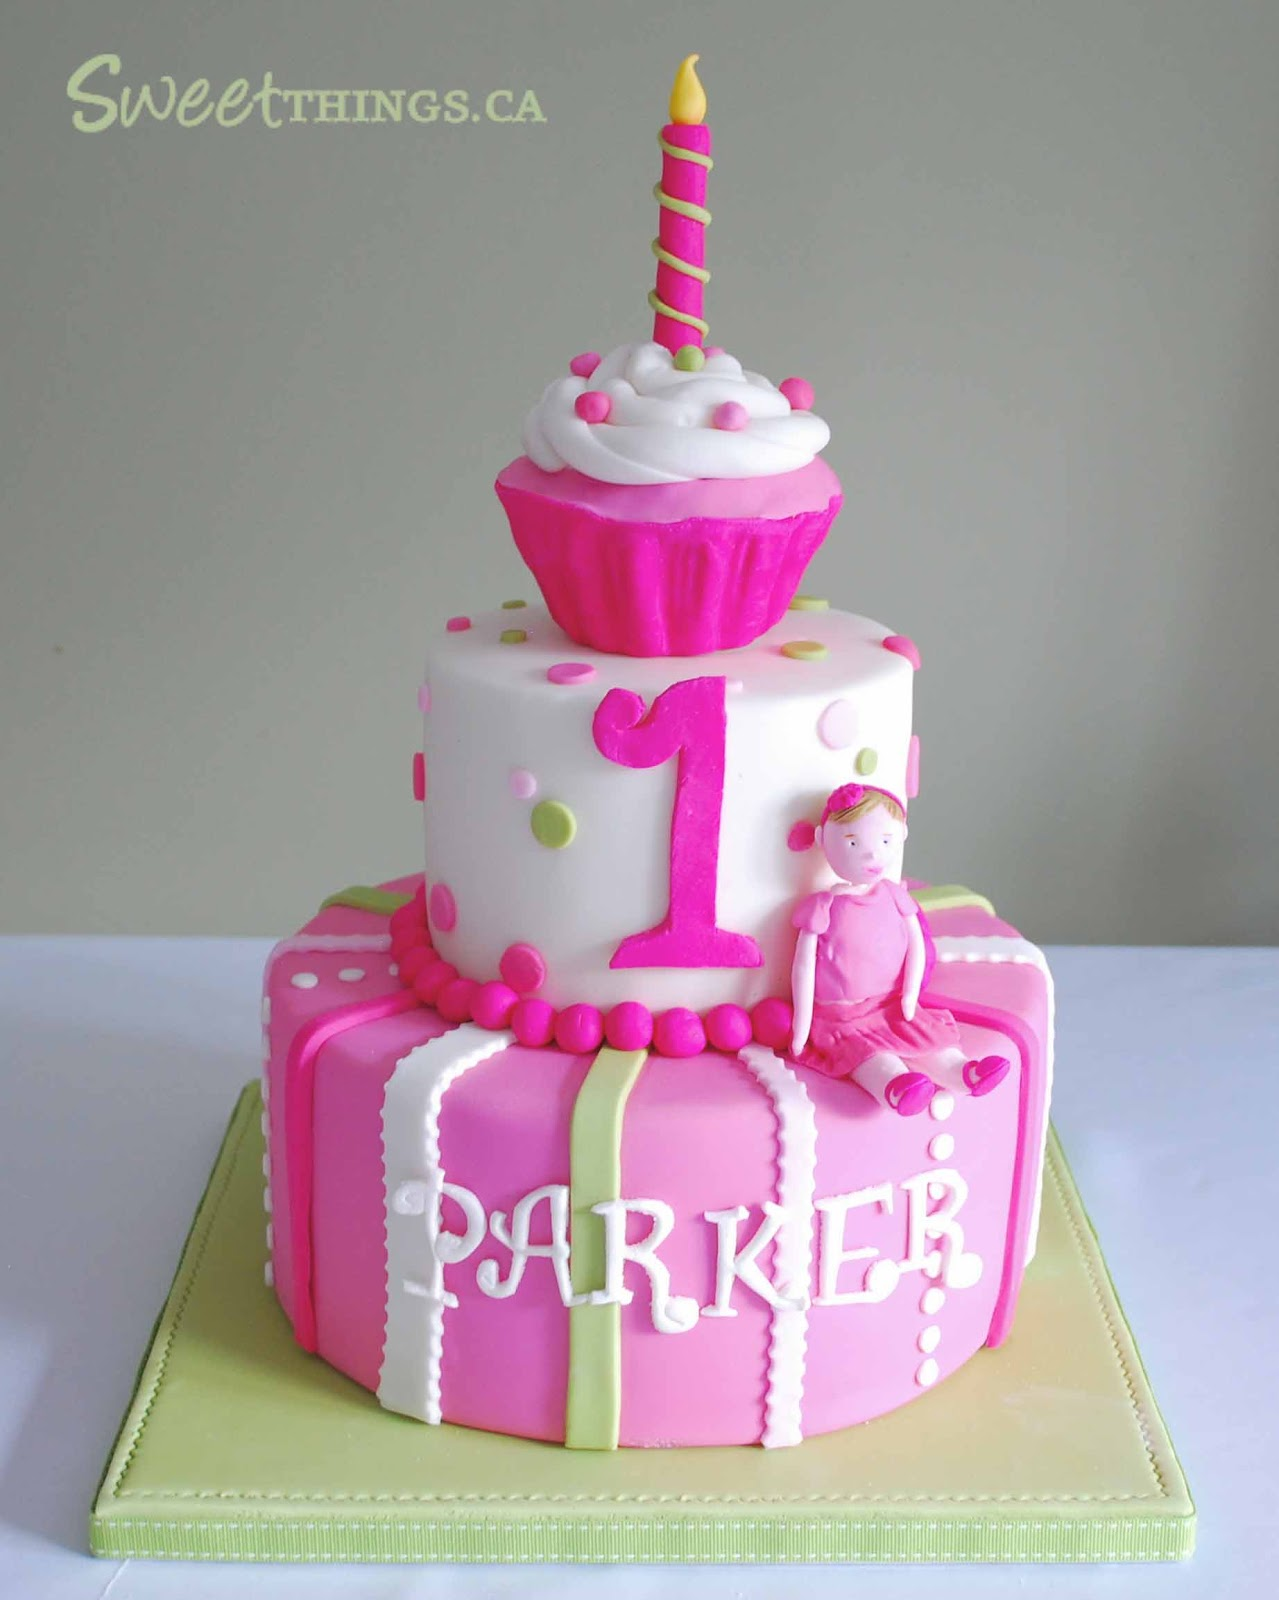 Birthday Cake Ideas For Baby S First Birthday : SweetThings: Colorful 1st Birthday Cake